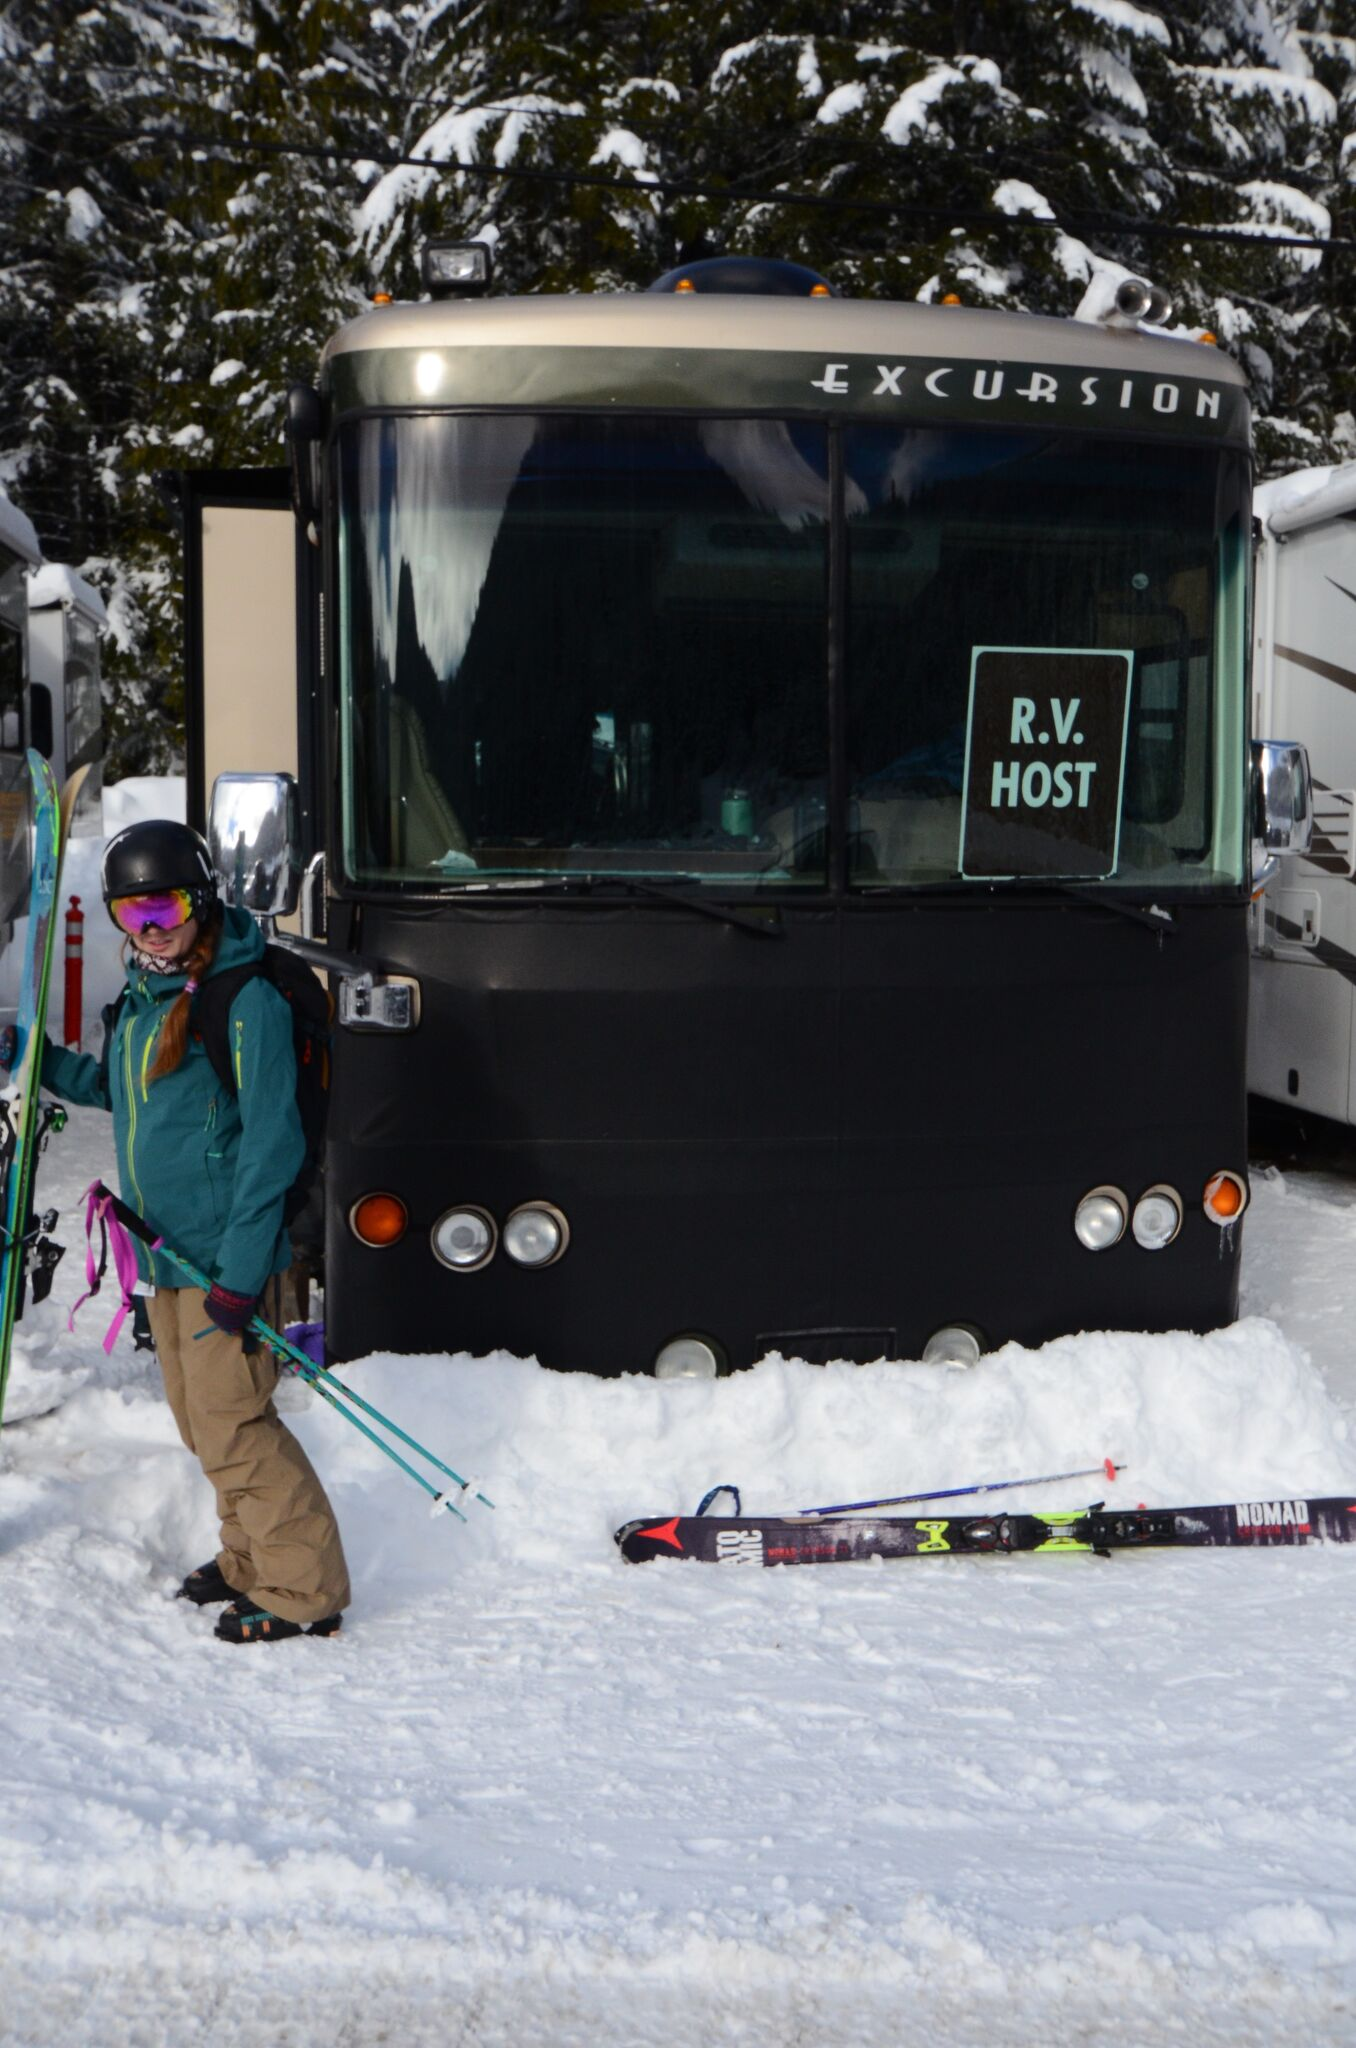 R.V. Host is an official title at Crystal Mountain! PC: John Kochevar